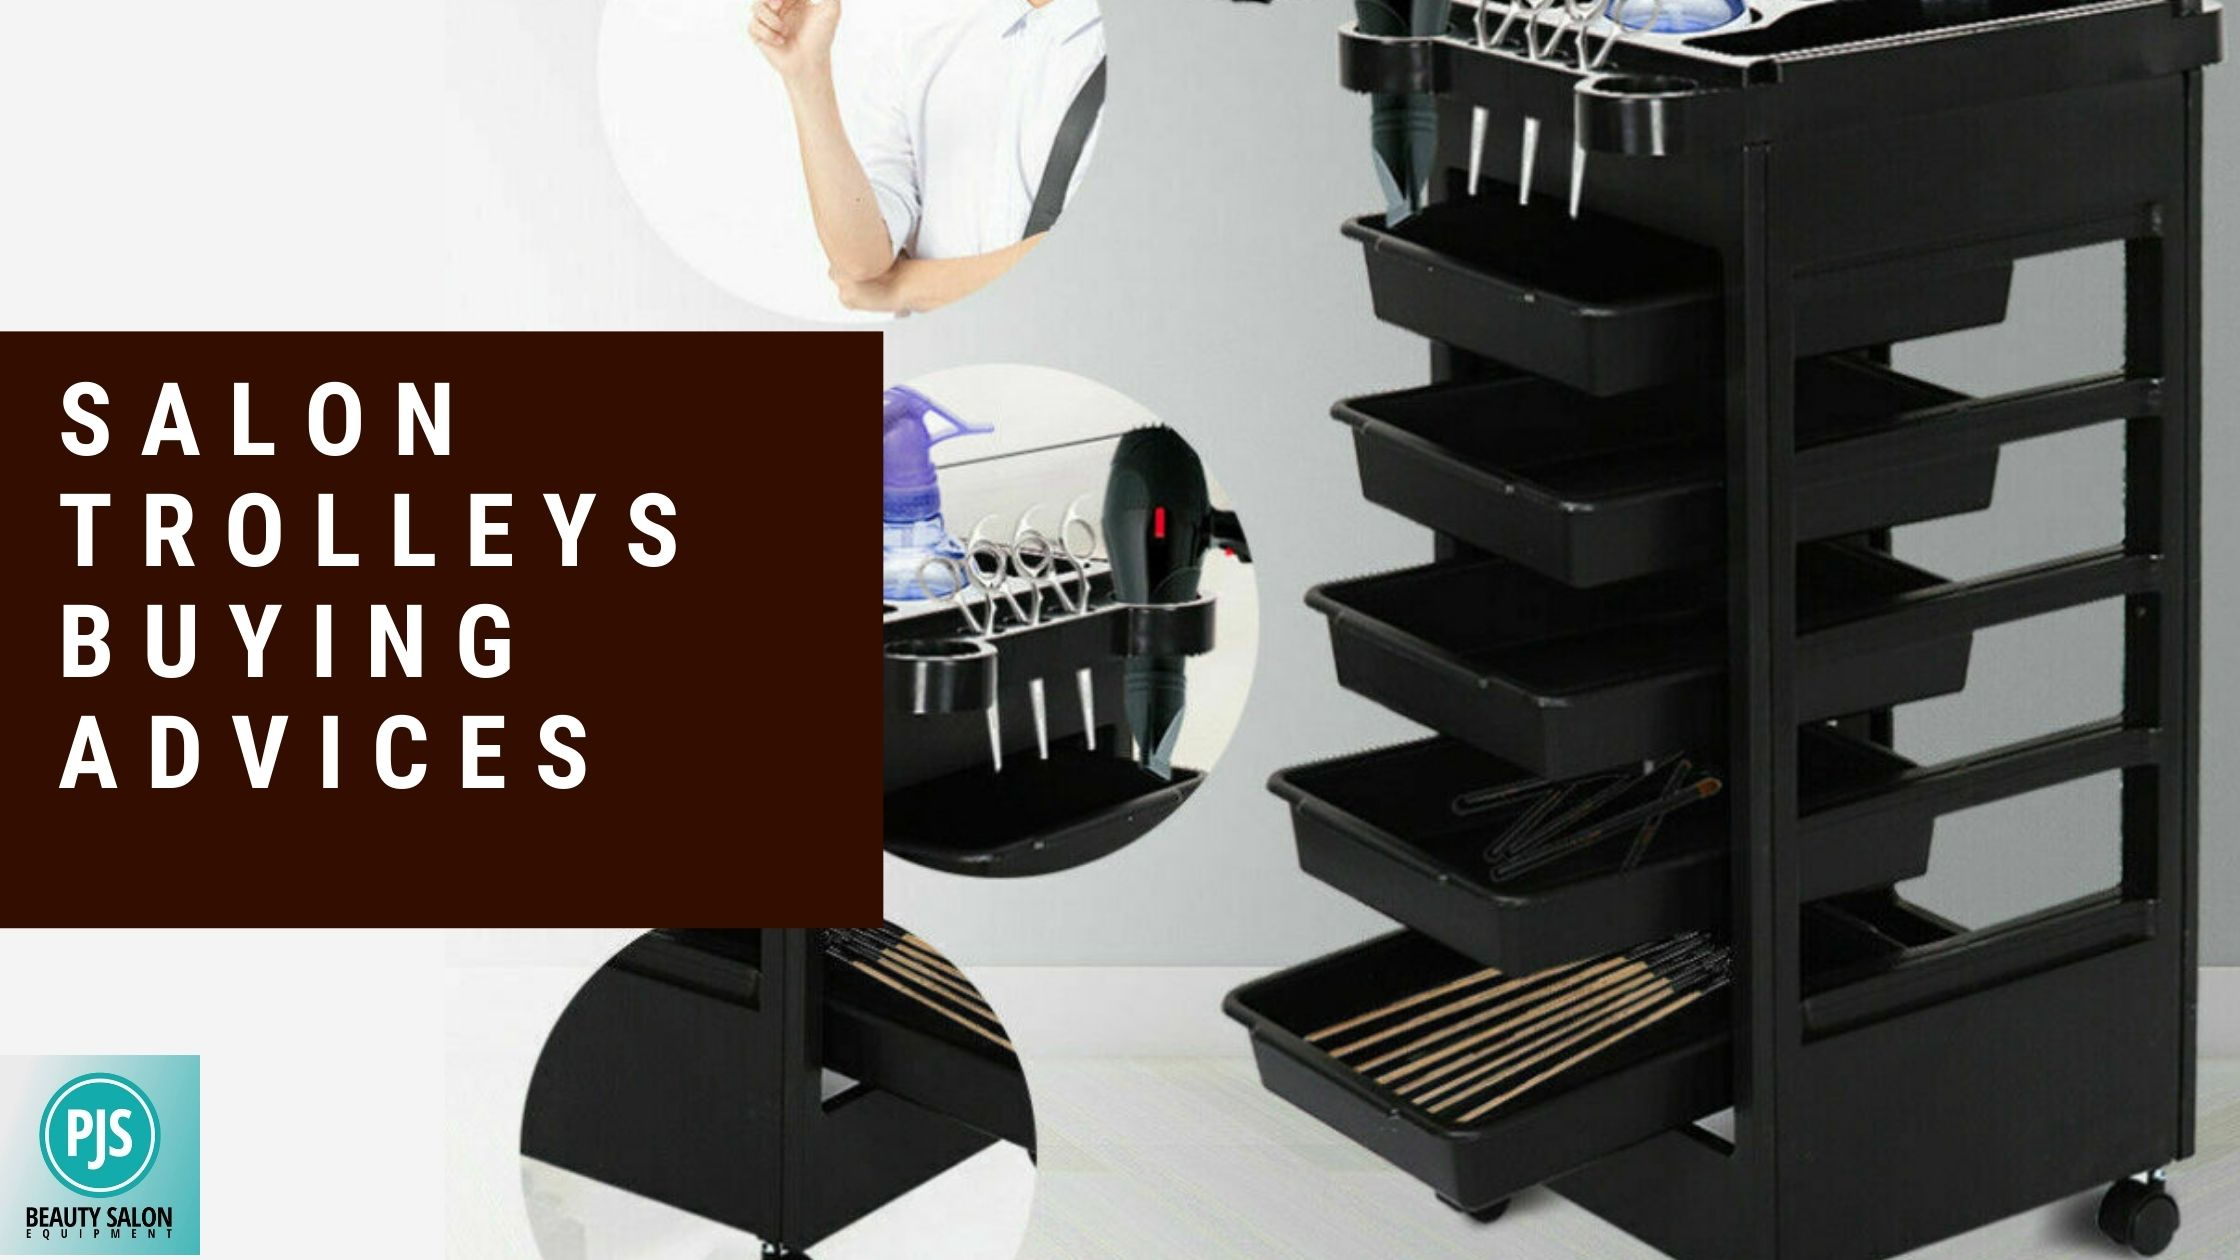 Salon Trolleys Buying Advices